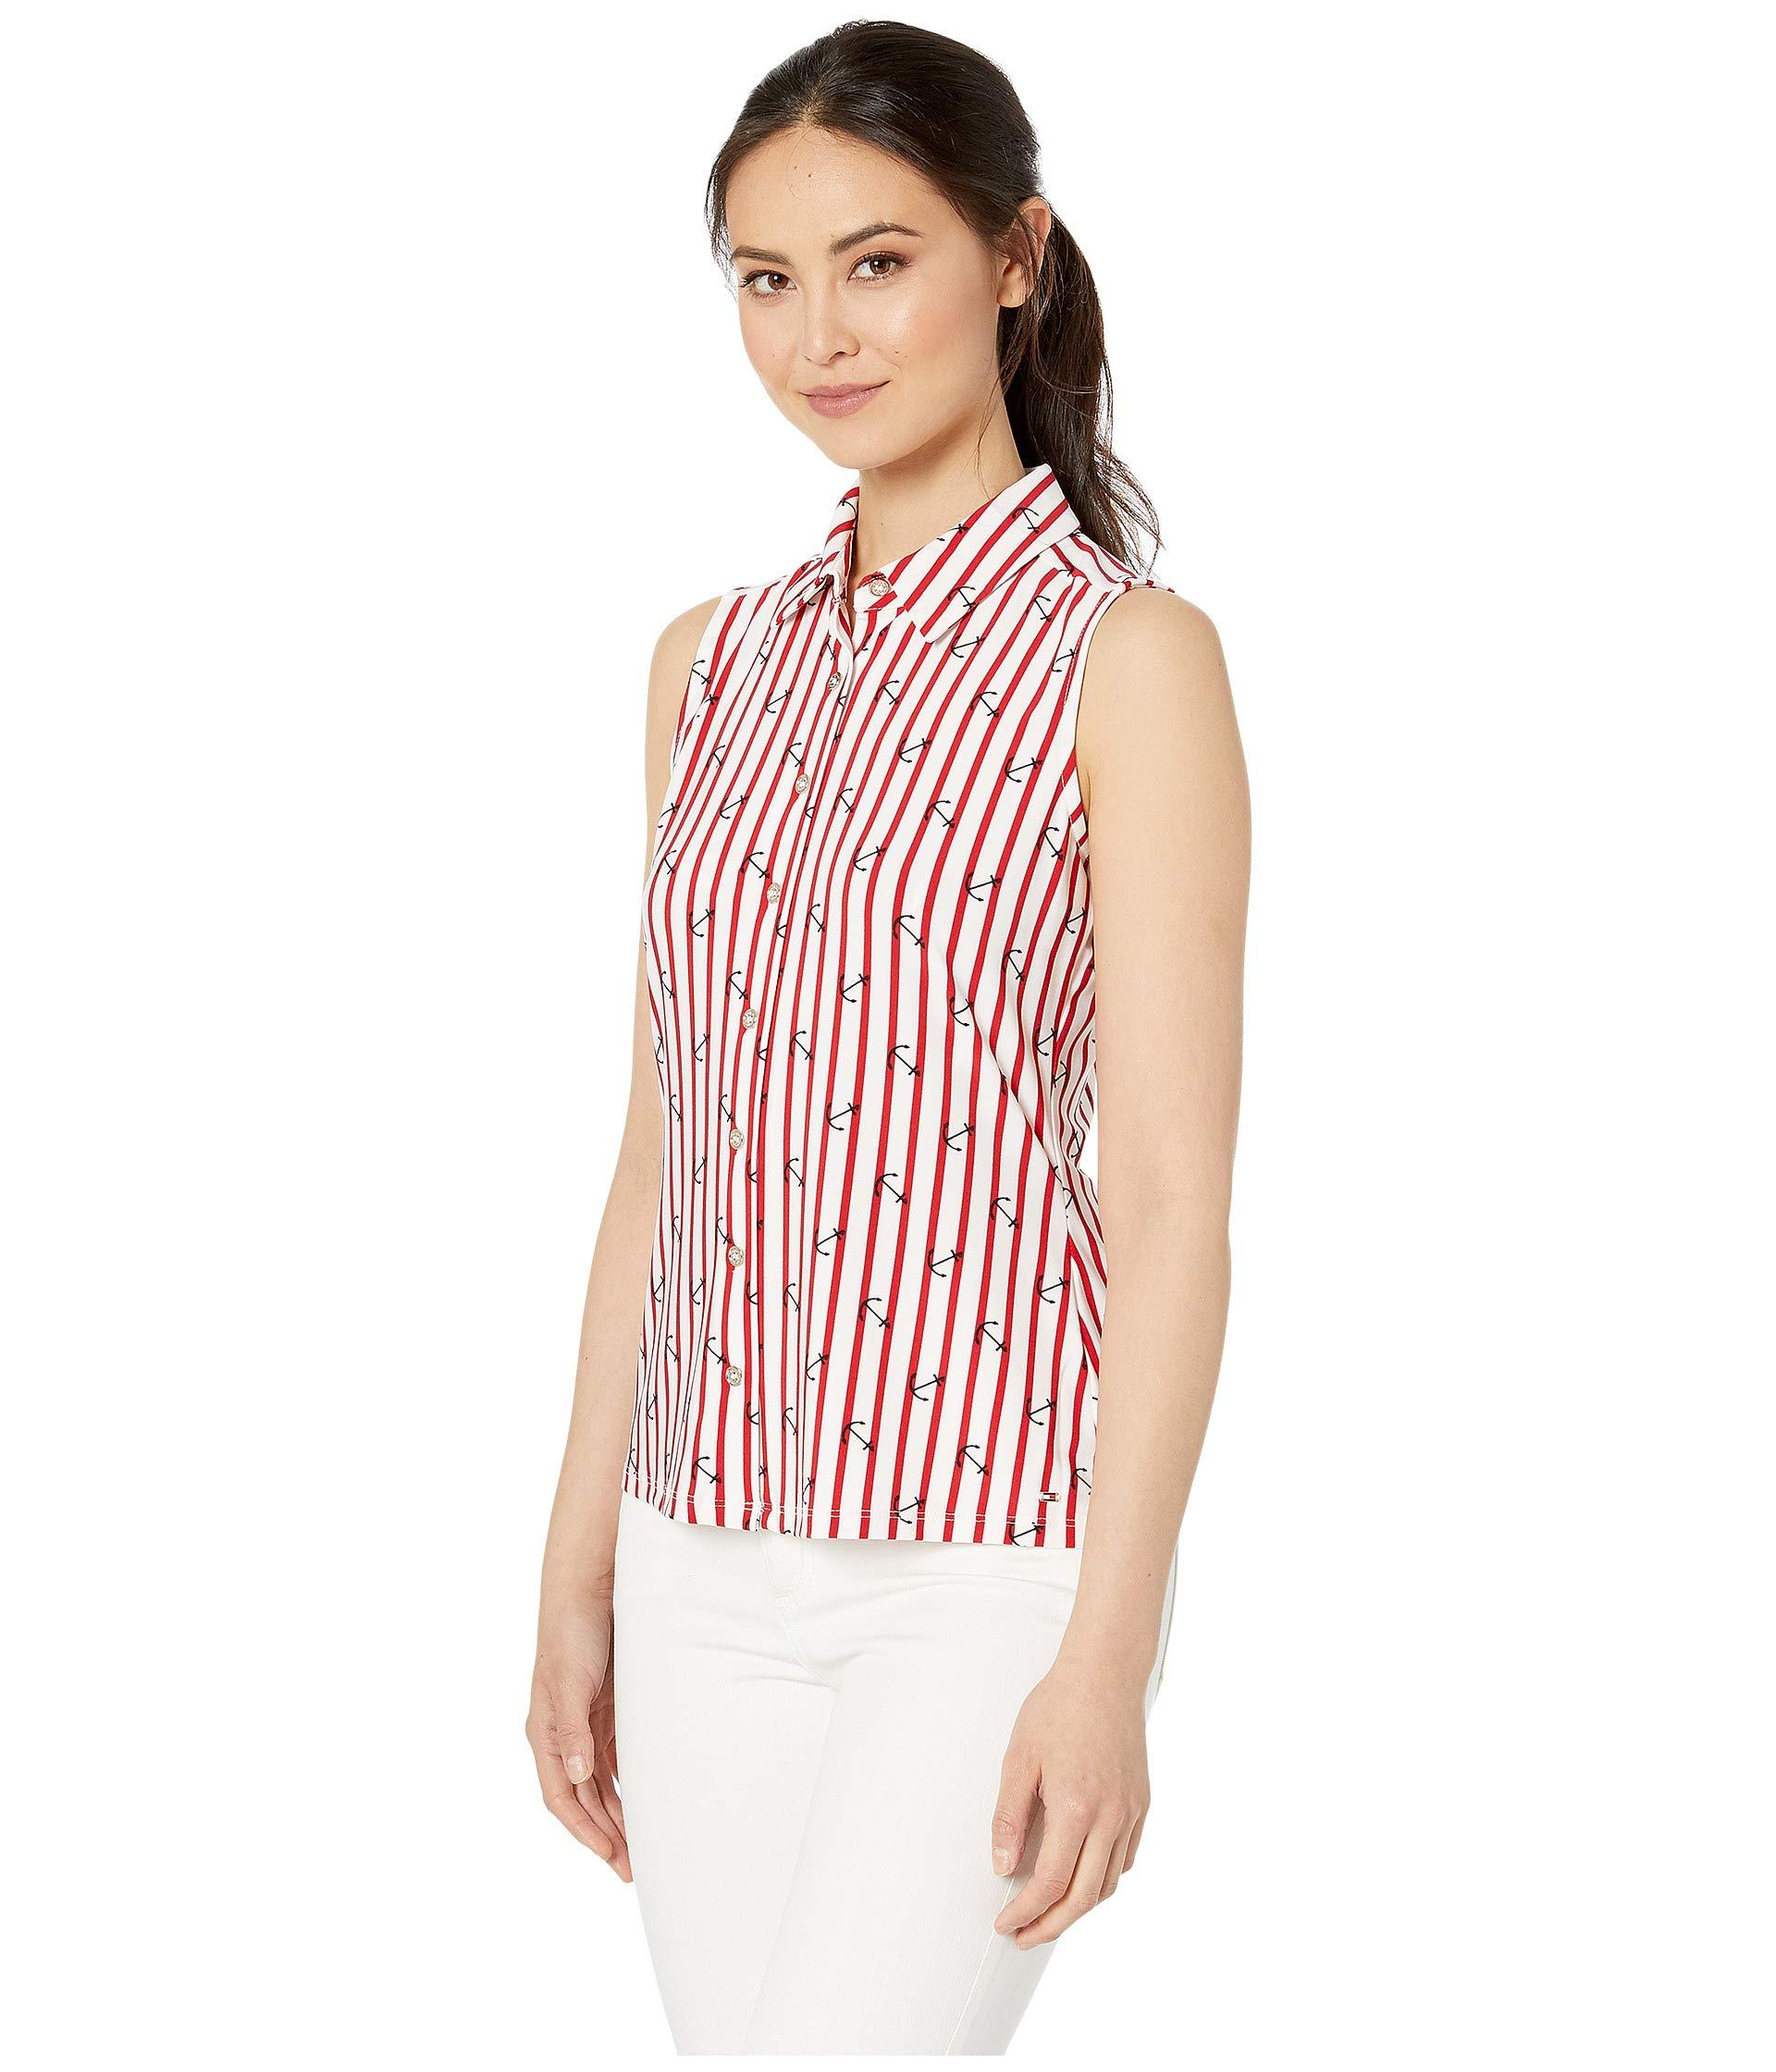 fc04e0bfb549 Lyst - Tommy Hilfiger Anchor Print Button Front Sleeveless Knit Top in Red